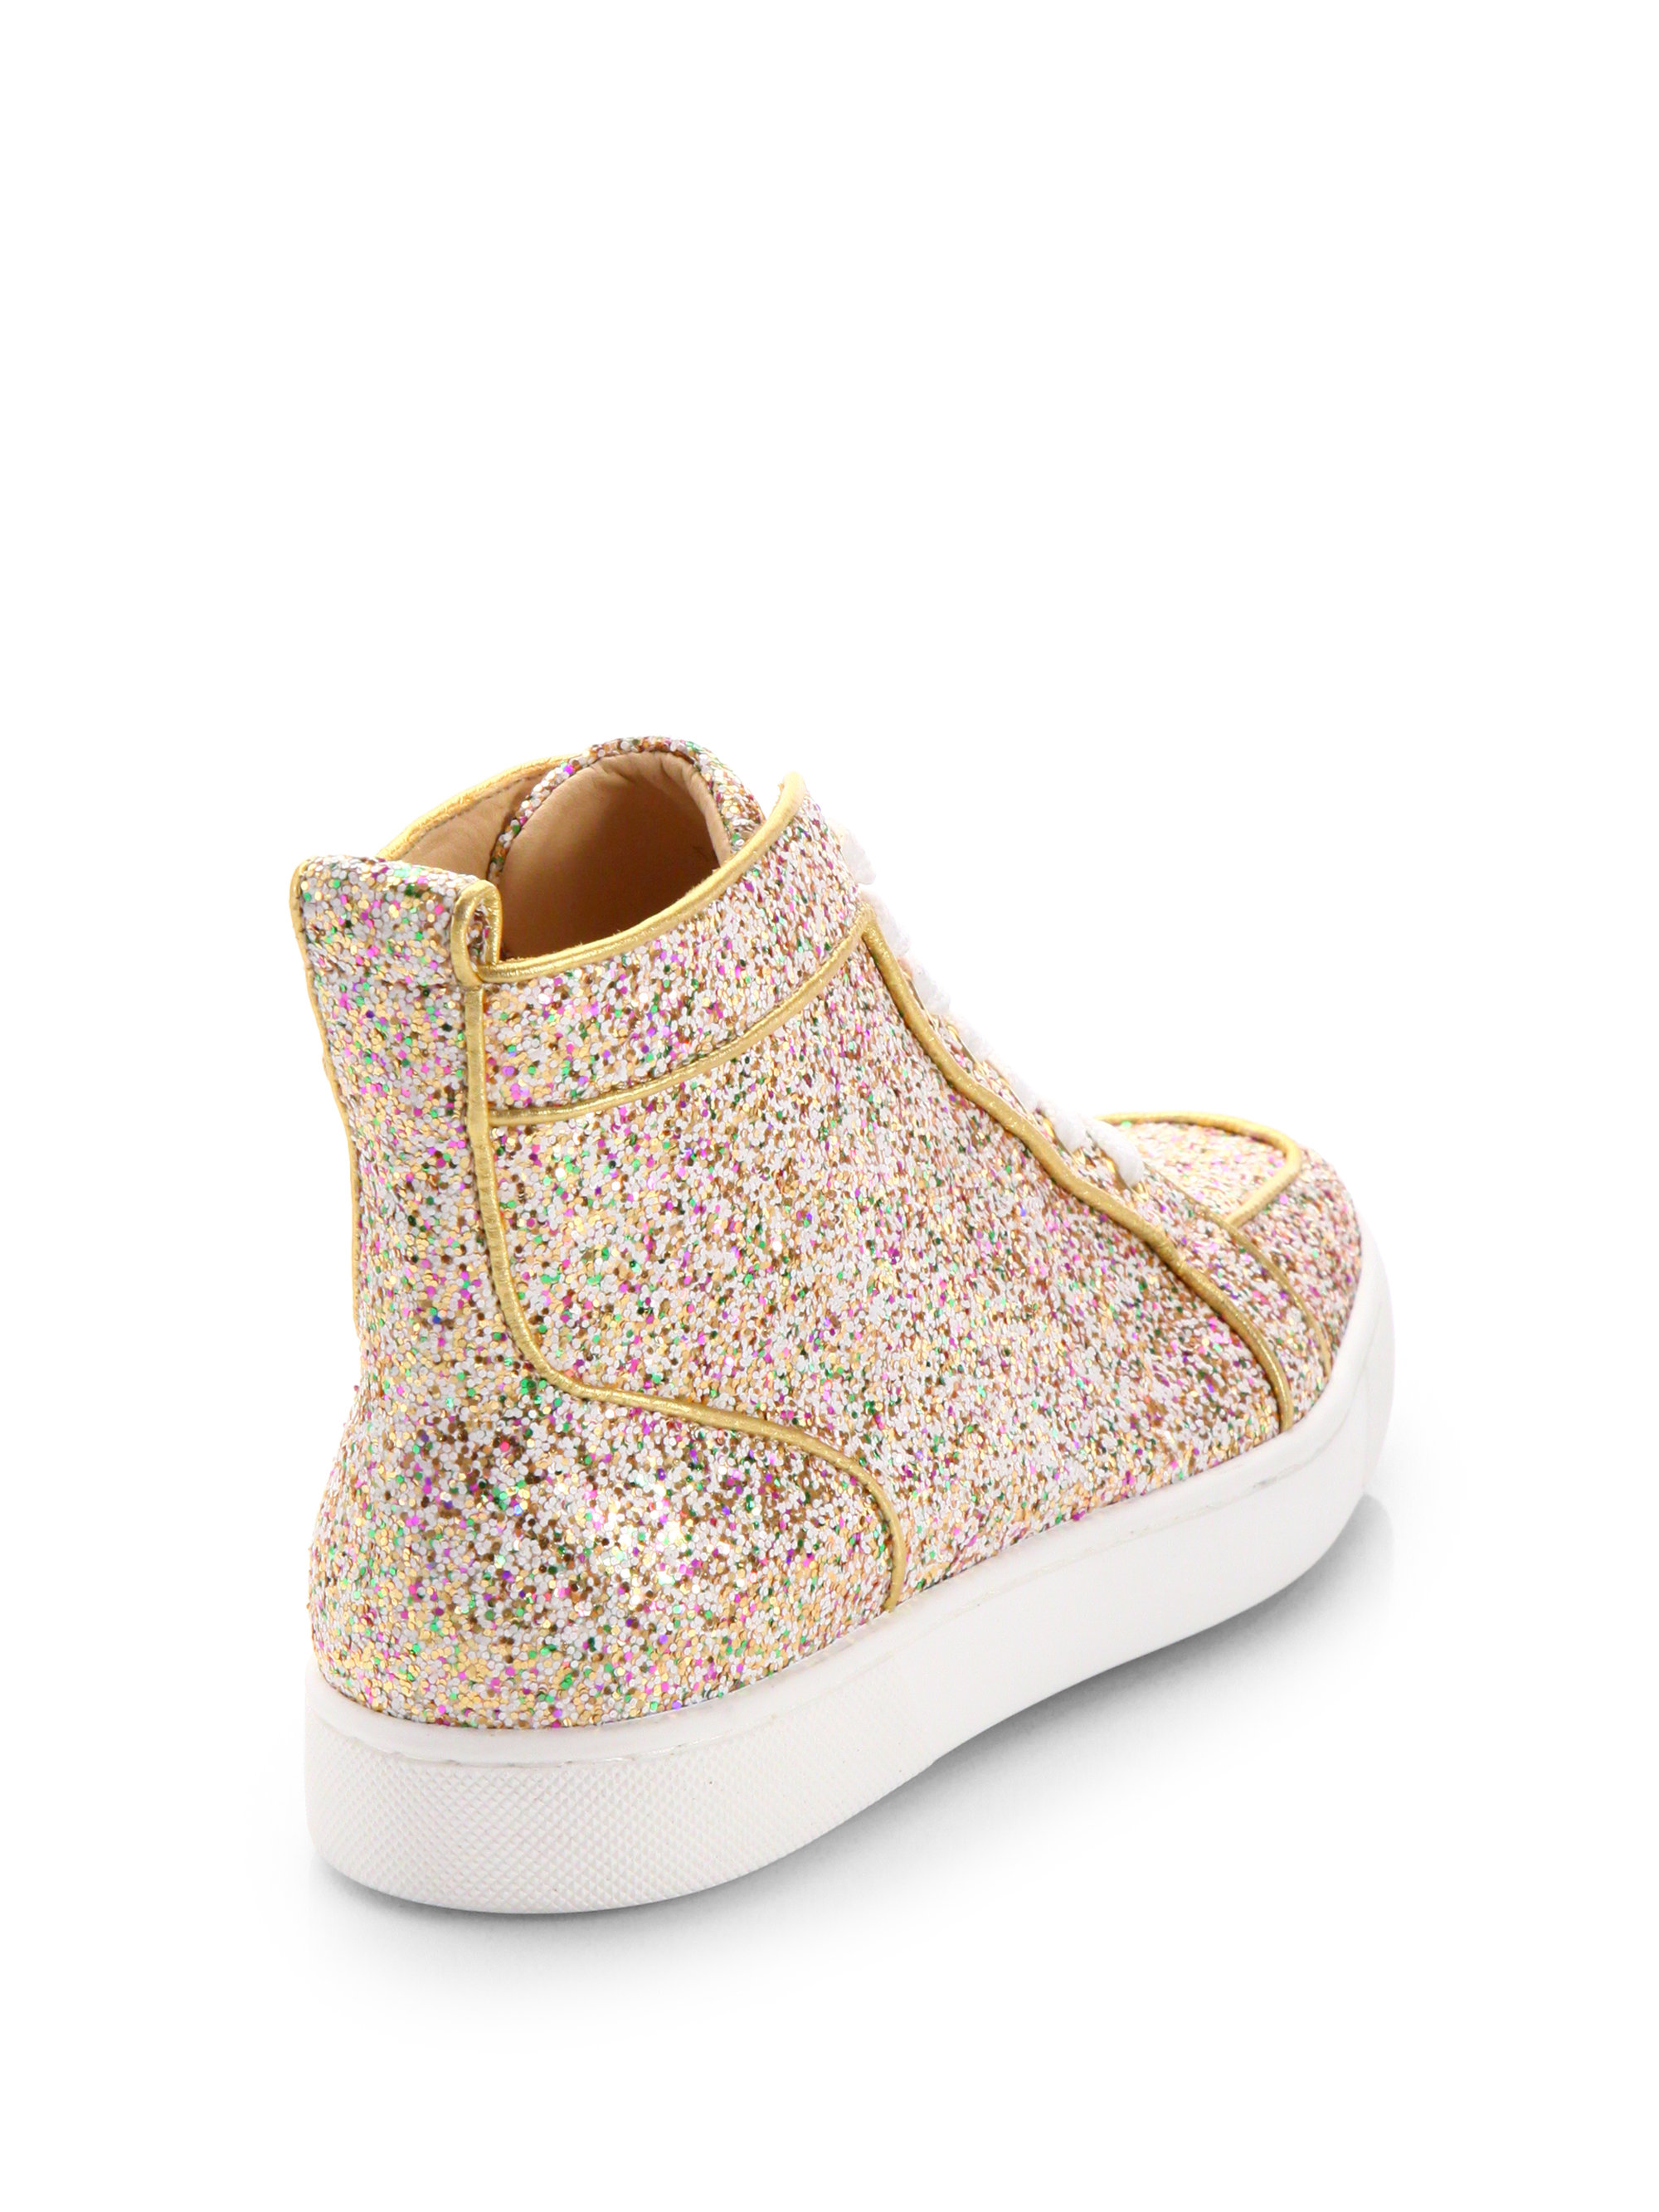 promo code 36d1f 49366 usa louboutin womens high top sneakers 3a076 672ab